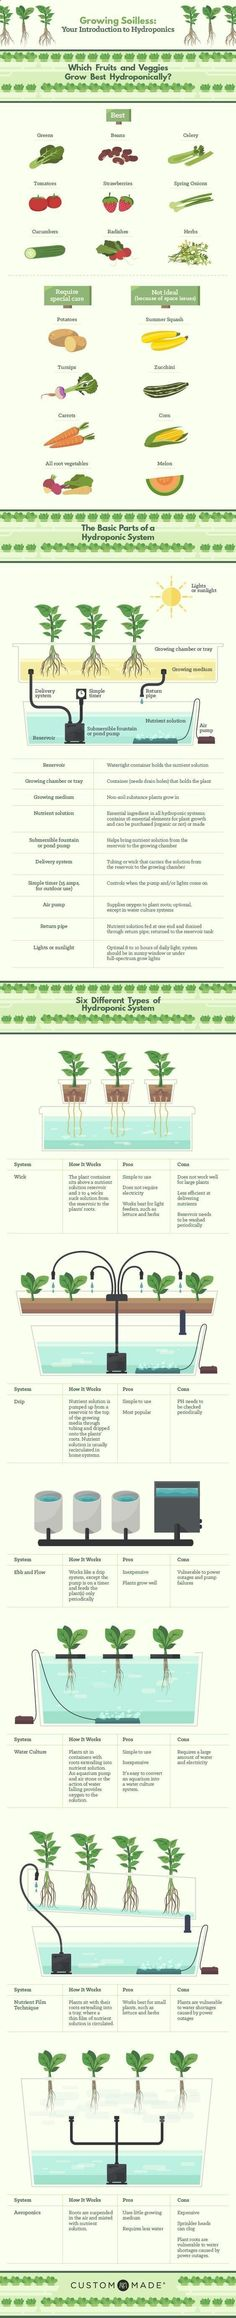 Aquaponics System - A Beginner's Handy Guide to Hydroponic Gardening: homeandgardenamer... Break-Through Organic Gardening Secret Grows You Up To 10 Times The Plants, In Half The Time, With Healthier Plants, While the Fish Do All the Work... And Yet... Your Plants Grow Abundantly, Taste Amazing, and Are Extremely Healthy